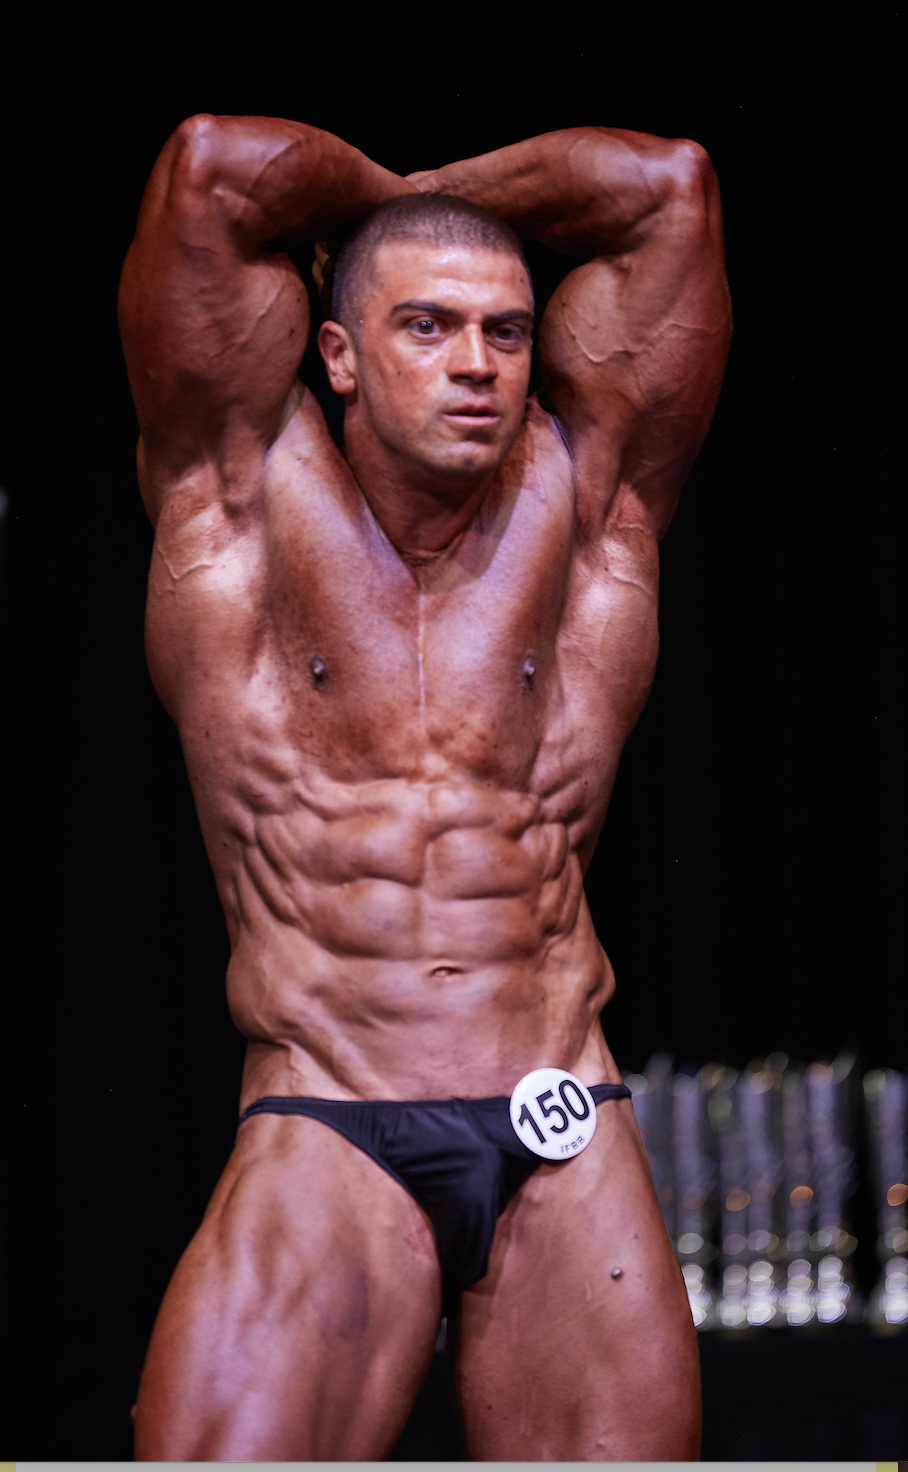 Teodor Dragoev, over 90 kg bodybuilding champion.